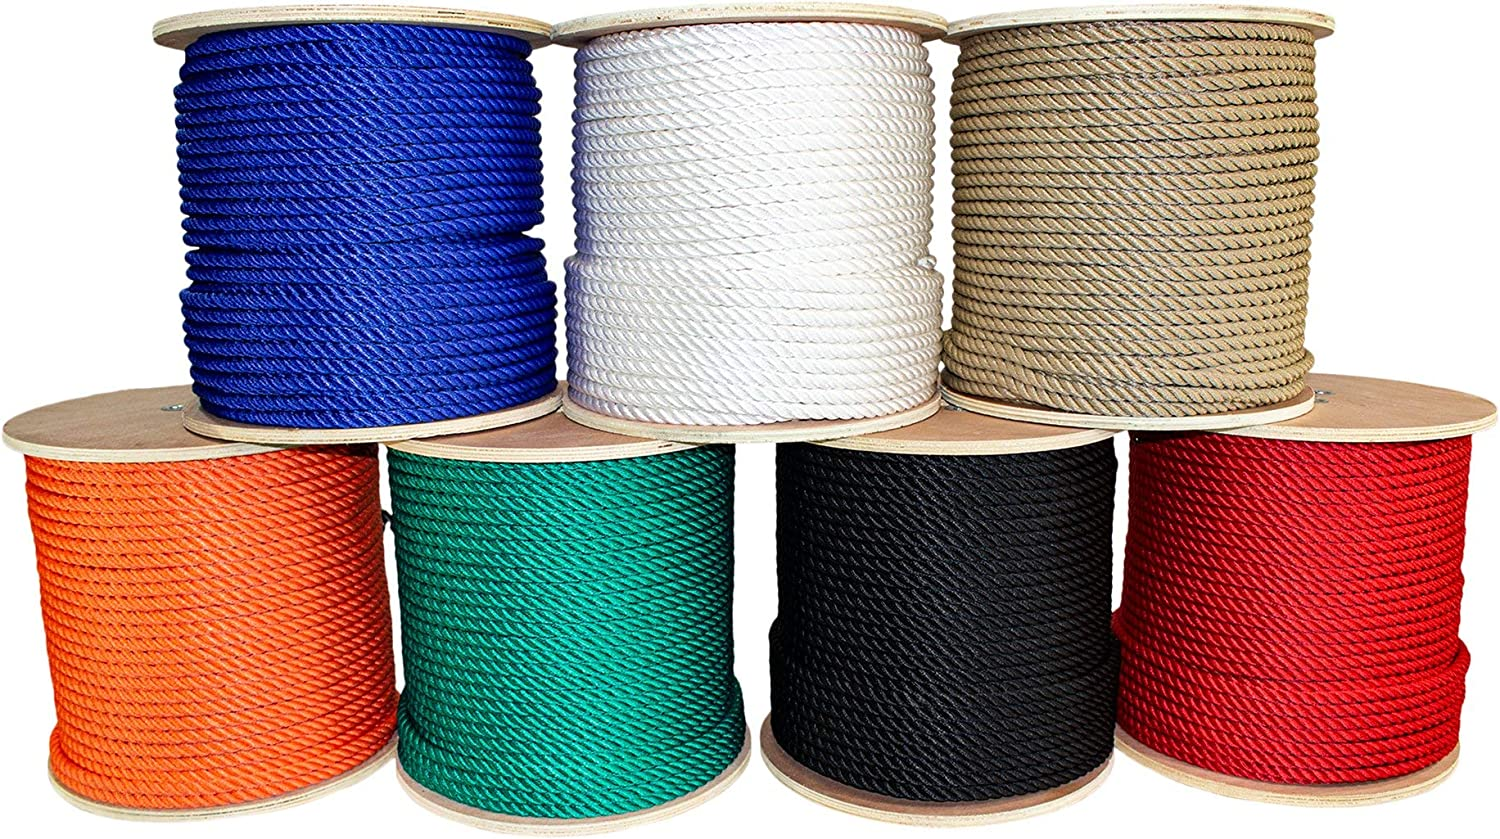 SGT KNOTS Twisted MFP Rope 1//4 in x 250 ft Blue